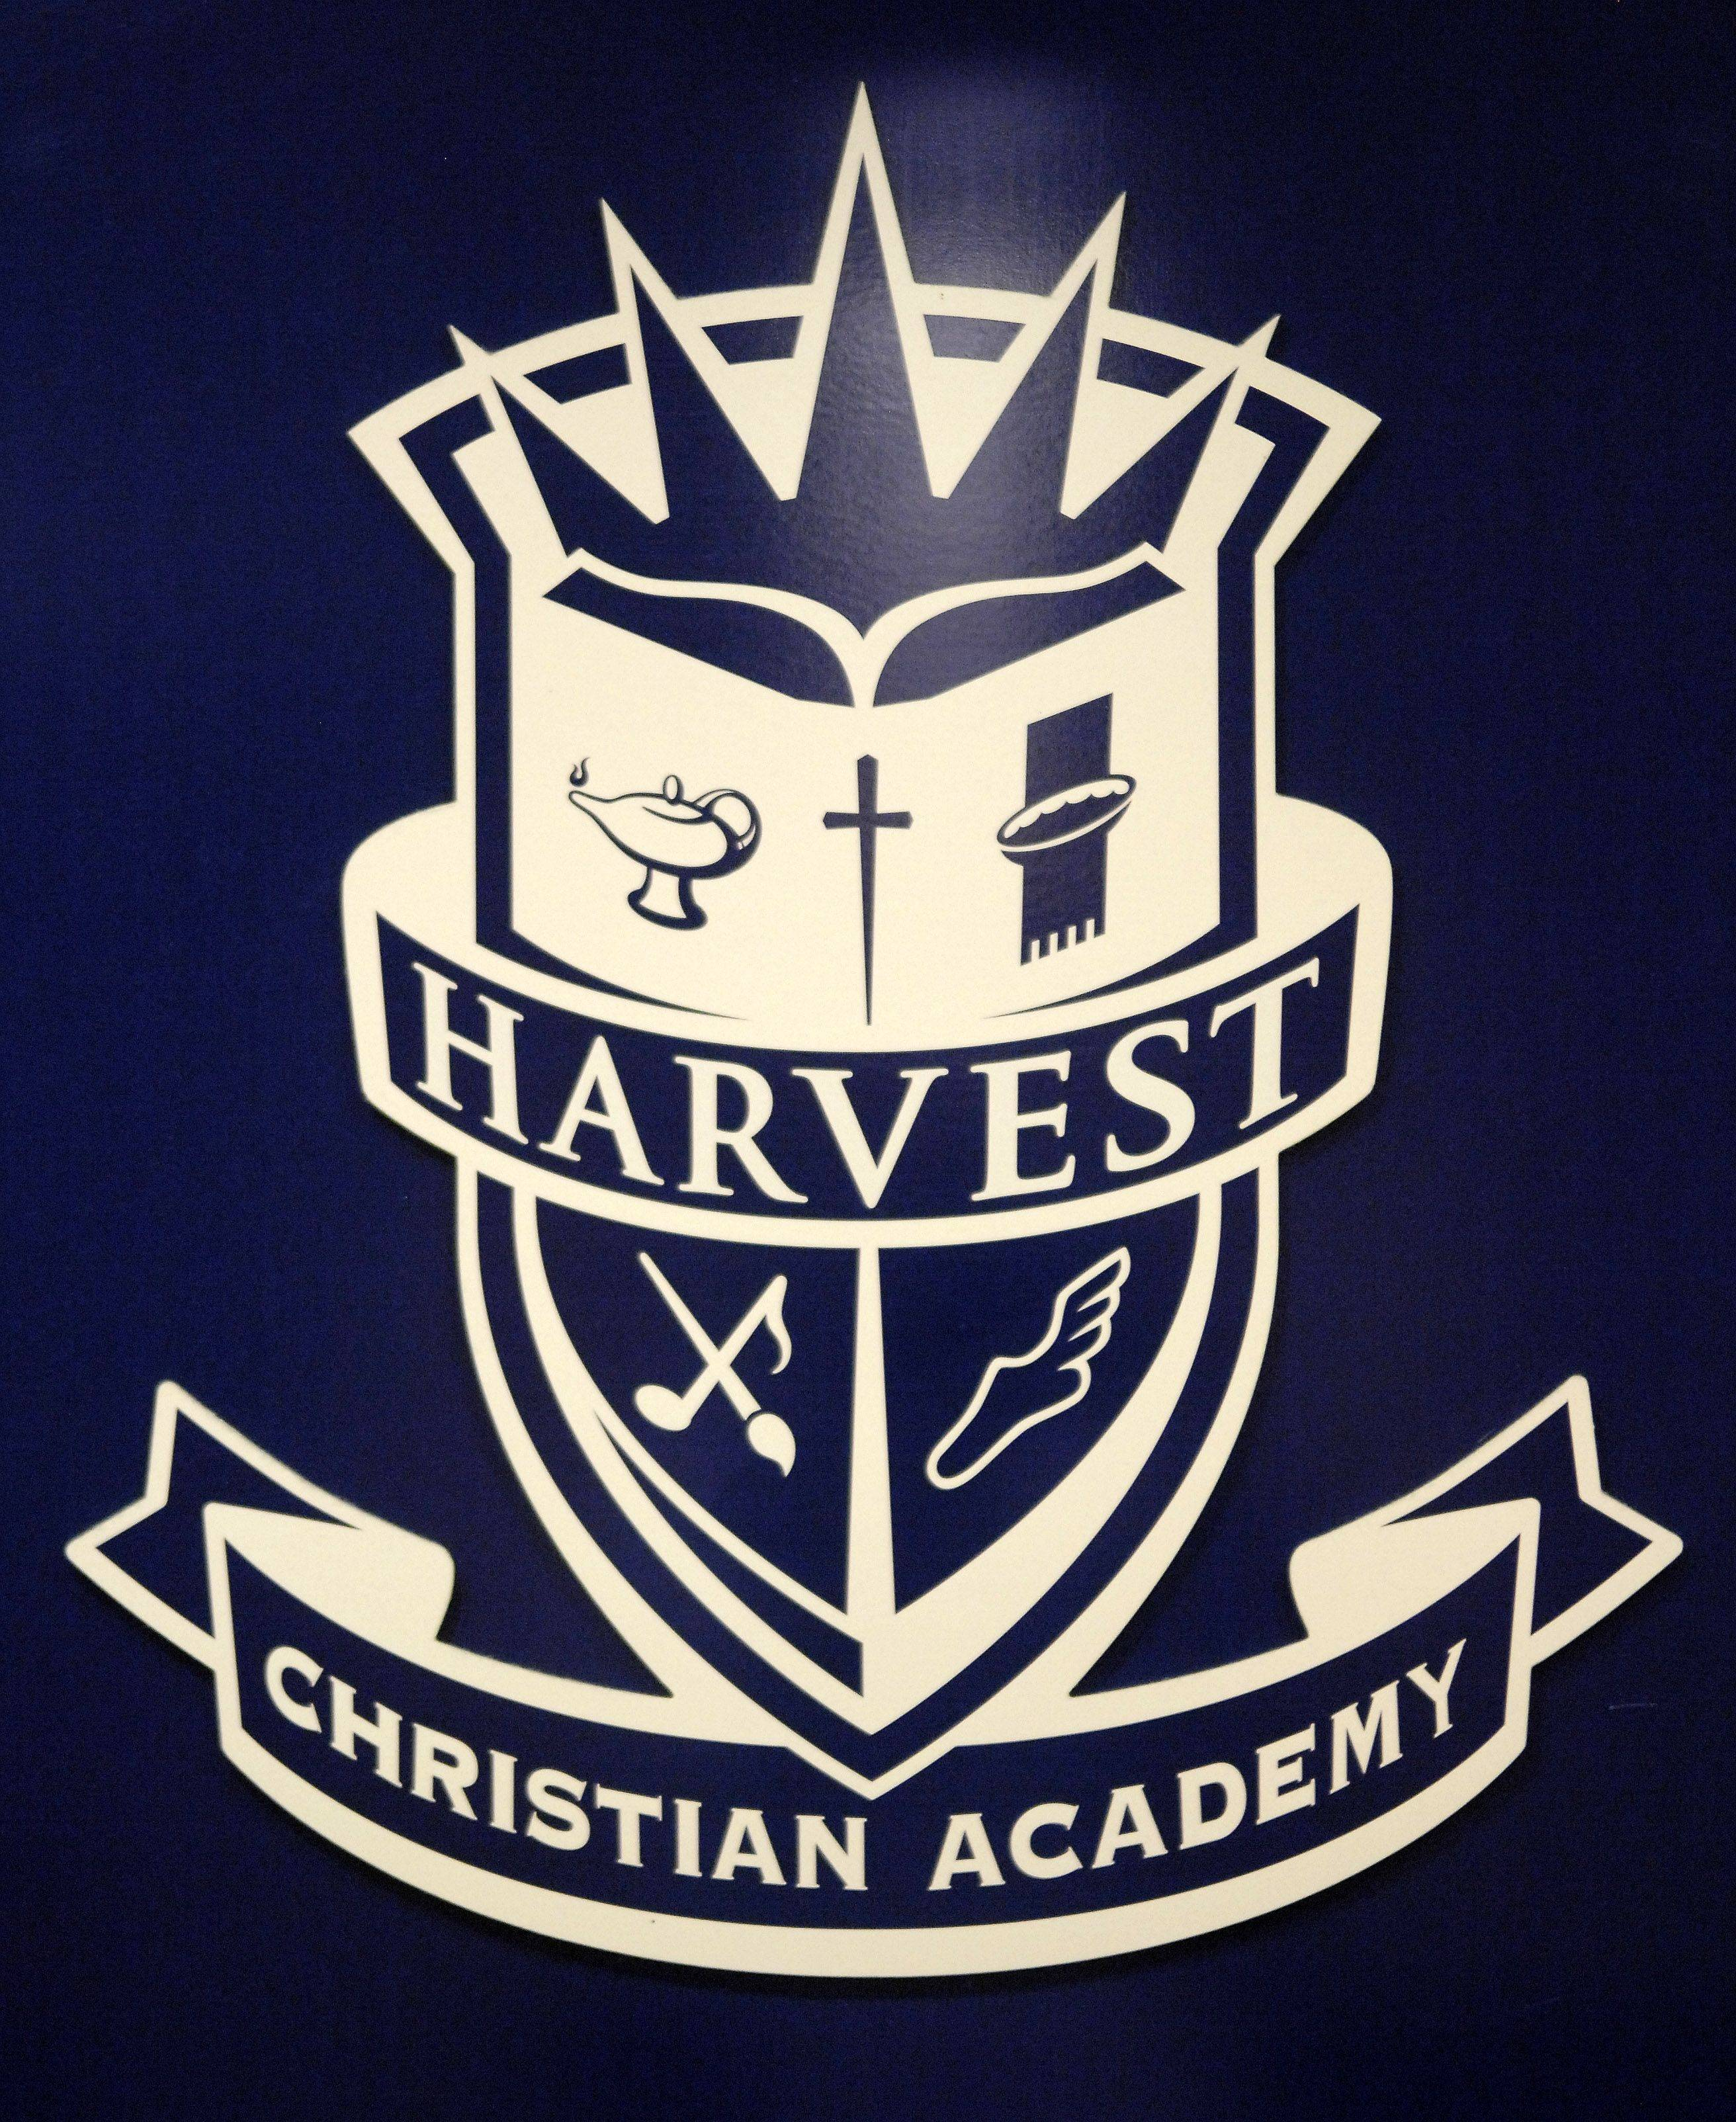 Harvest Christian Academy in Elgin is in its first year of IHSA sports participation.